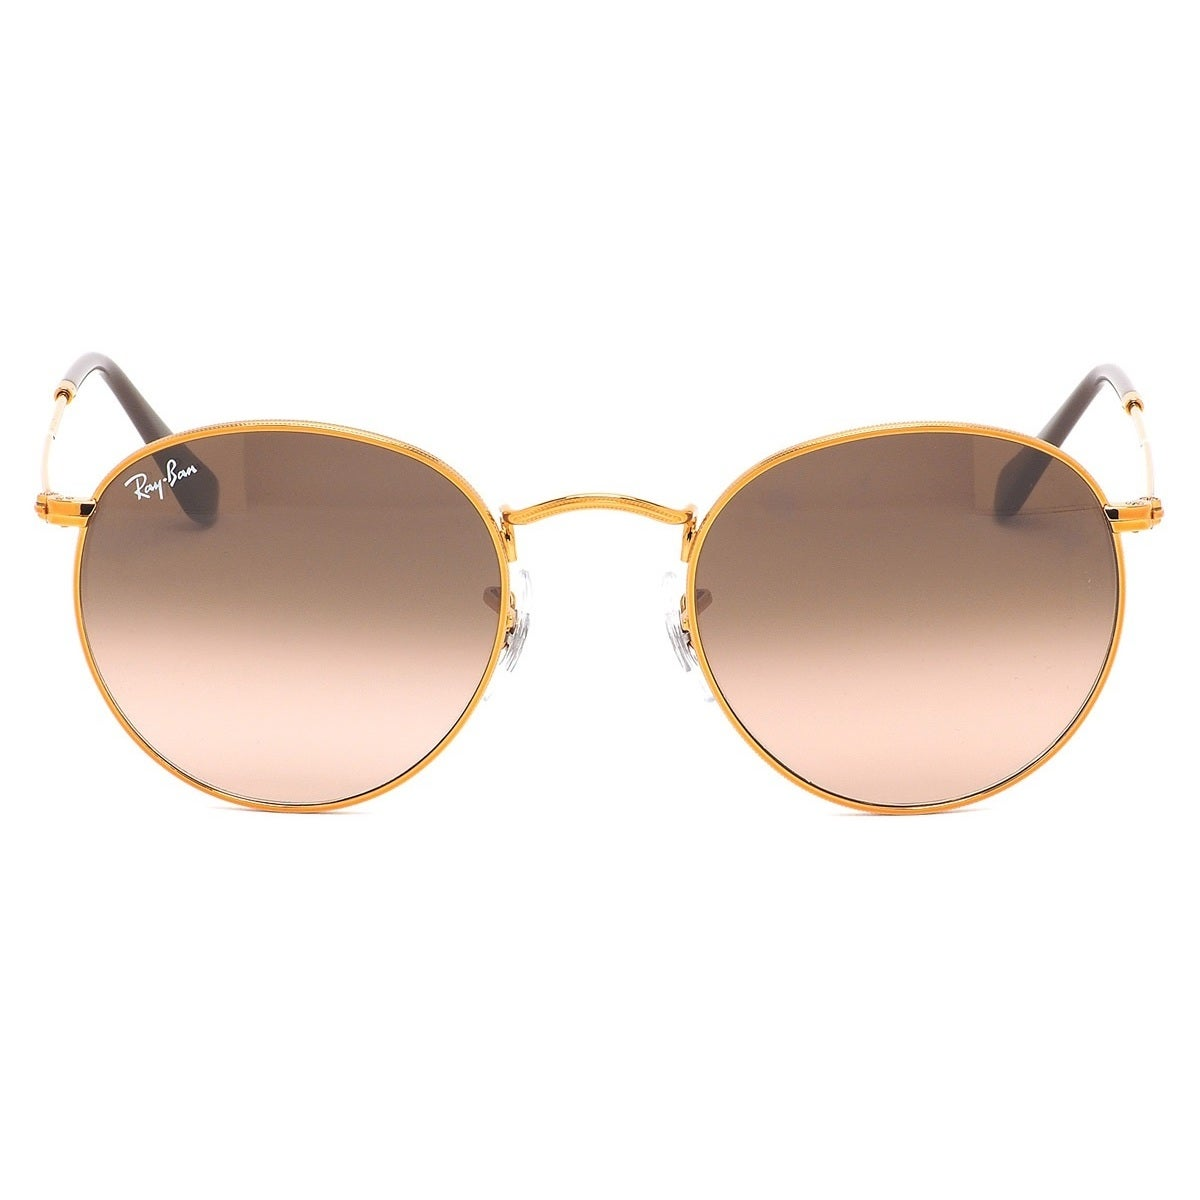 5bfe5bd57eb5c Shop Ray-Ban RB3447 9001A5 Unisex Round Bronze-Copper Frame Pink Brown  Gradient Lens Sunglasses - Free Shipping Today - Overstock - 15002943